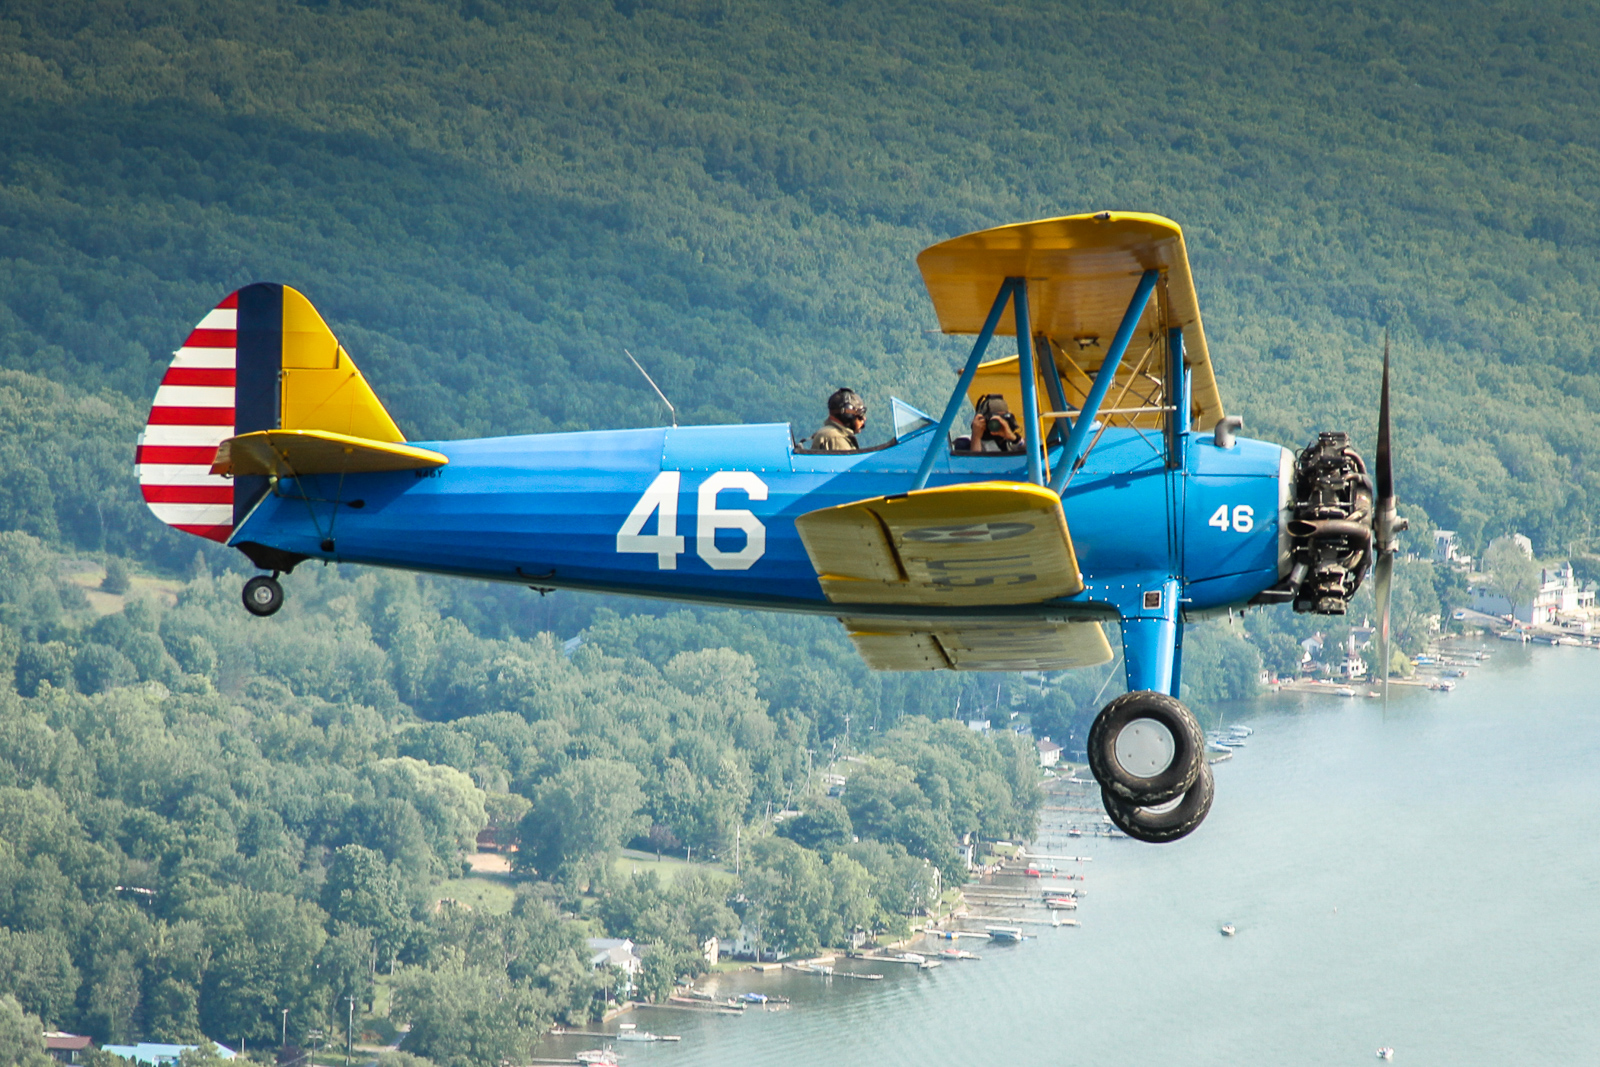 Stearman flown by Quentin Marty. (photo by Tom Pawlesh)